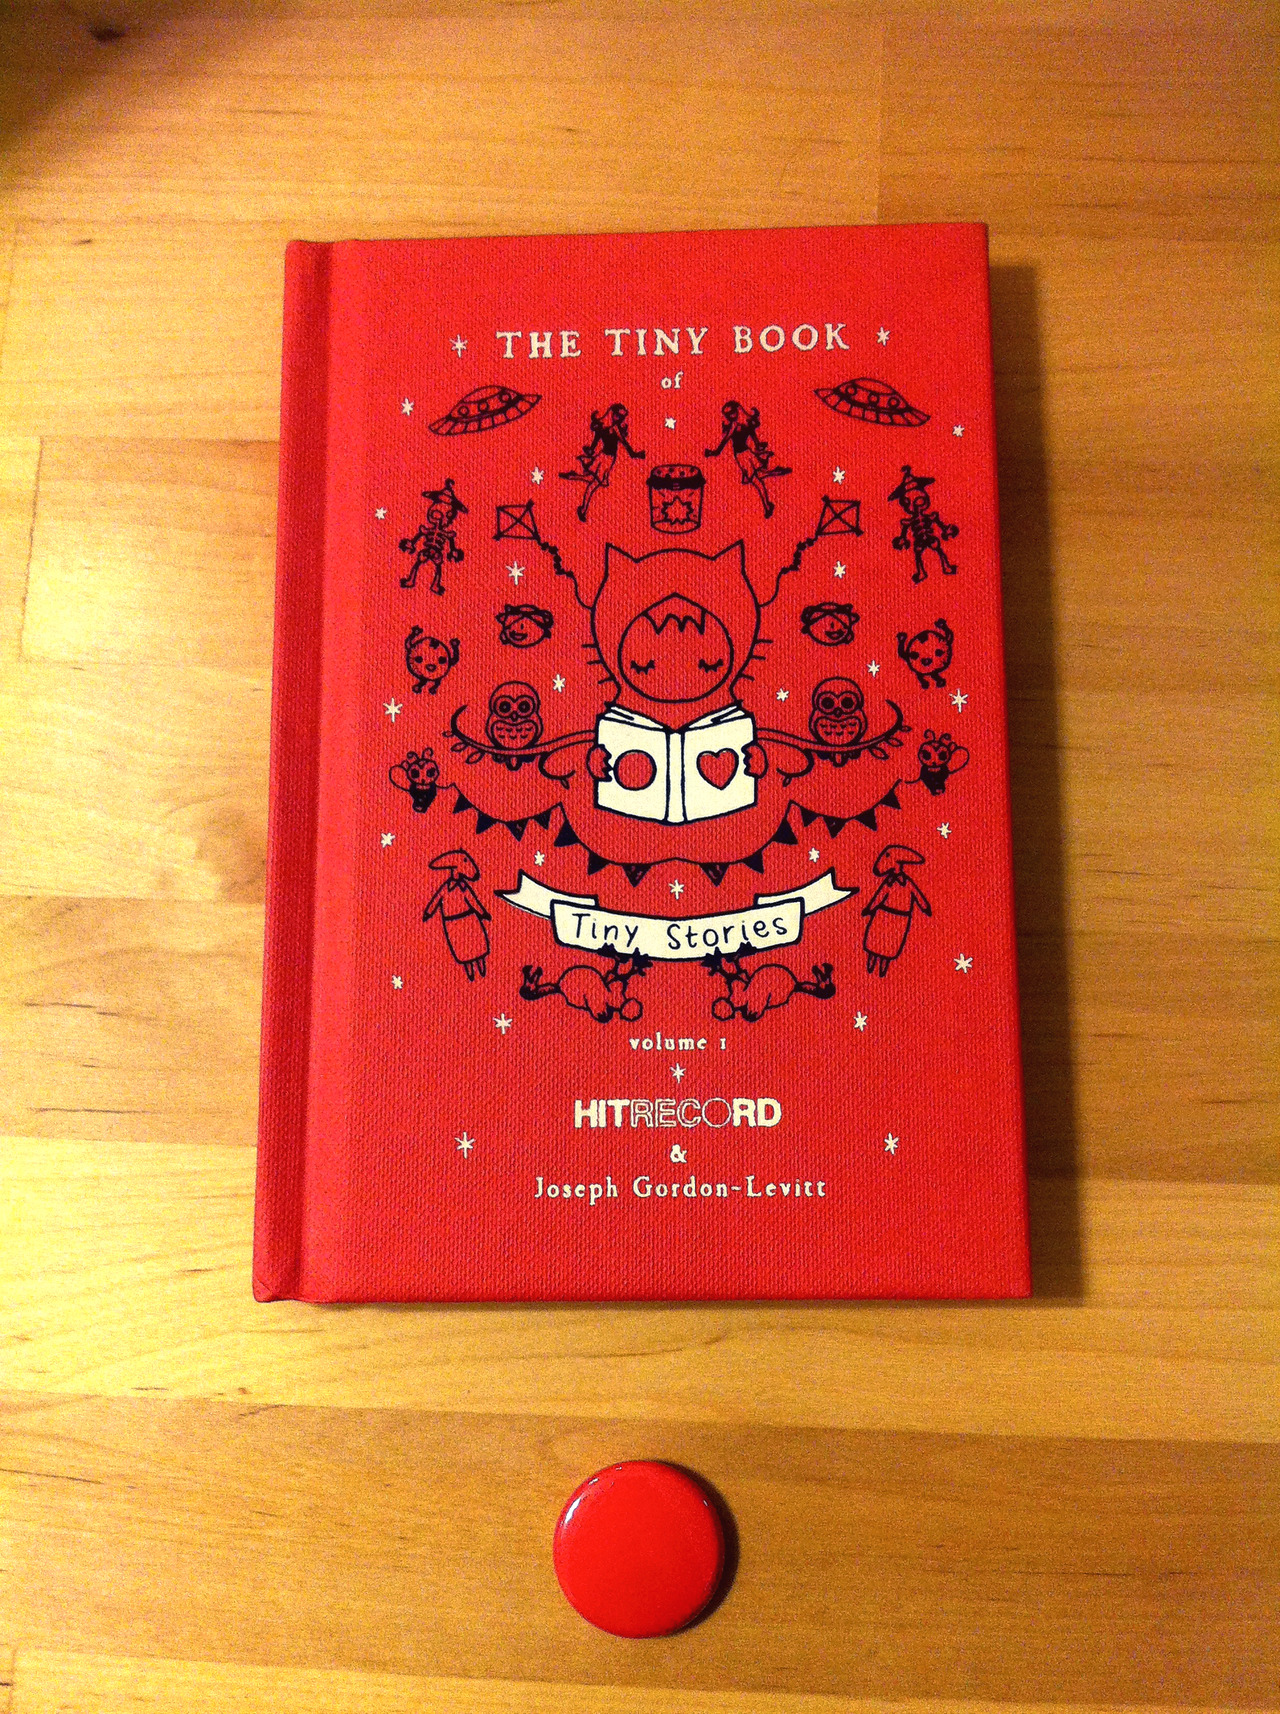 The Tiny Book of Tiny Stories arrived!  (✿ ♥‿♥)